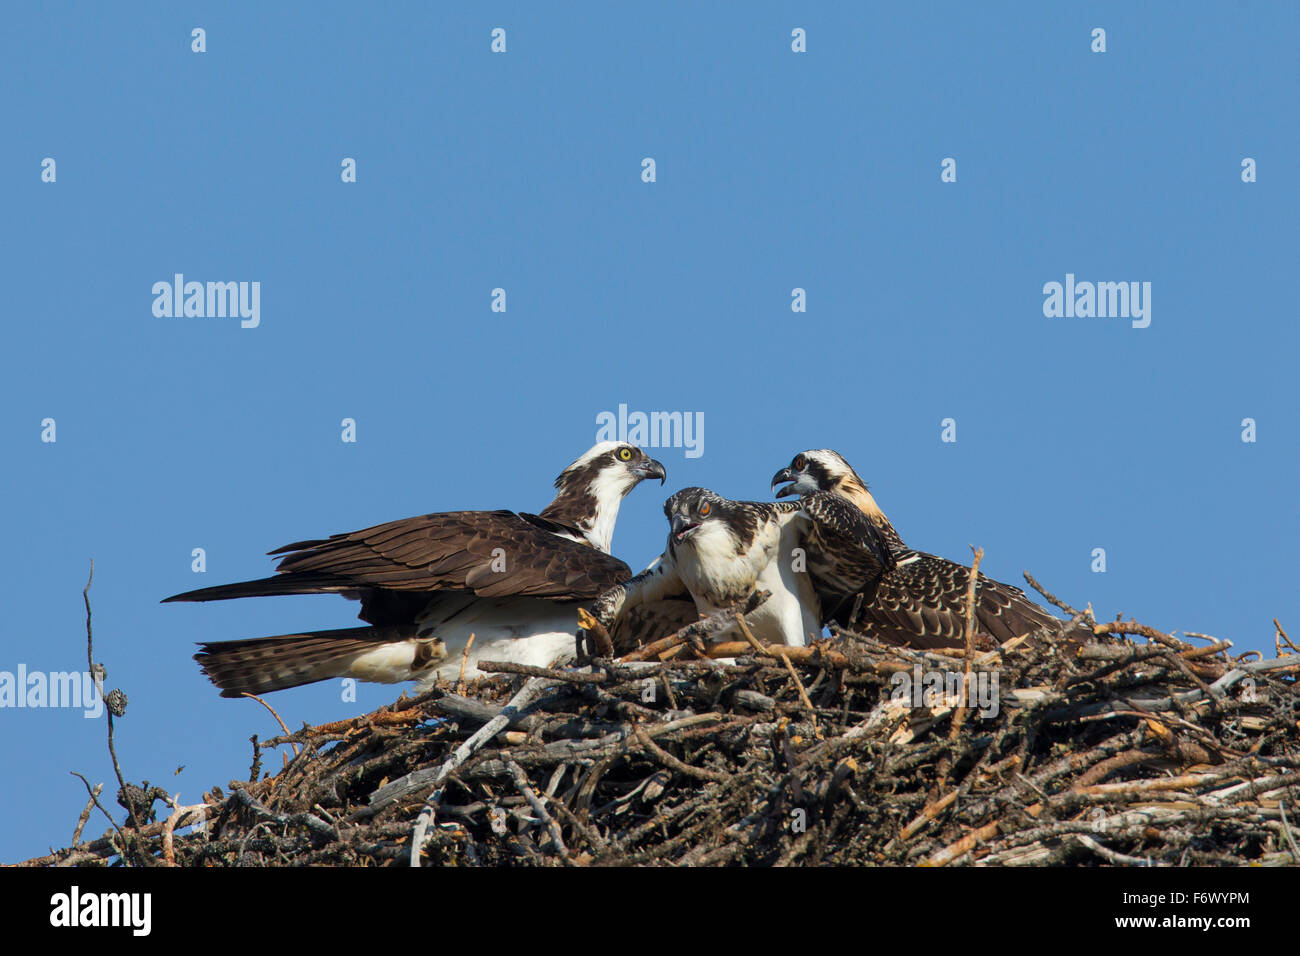 Osprey (Pandion haliaetus) adult bird with two juveniles on nest - Stock Image